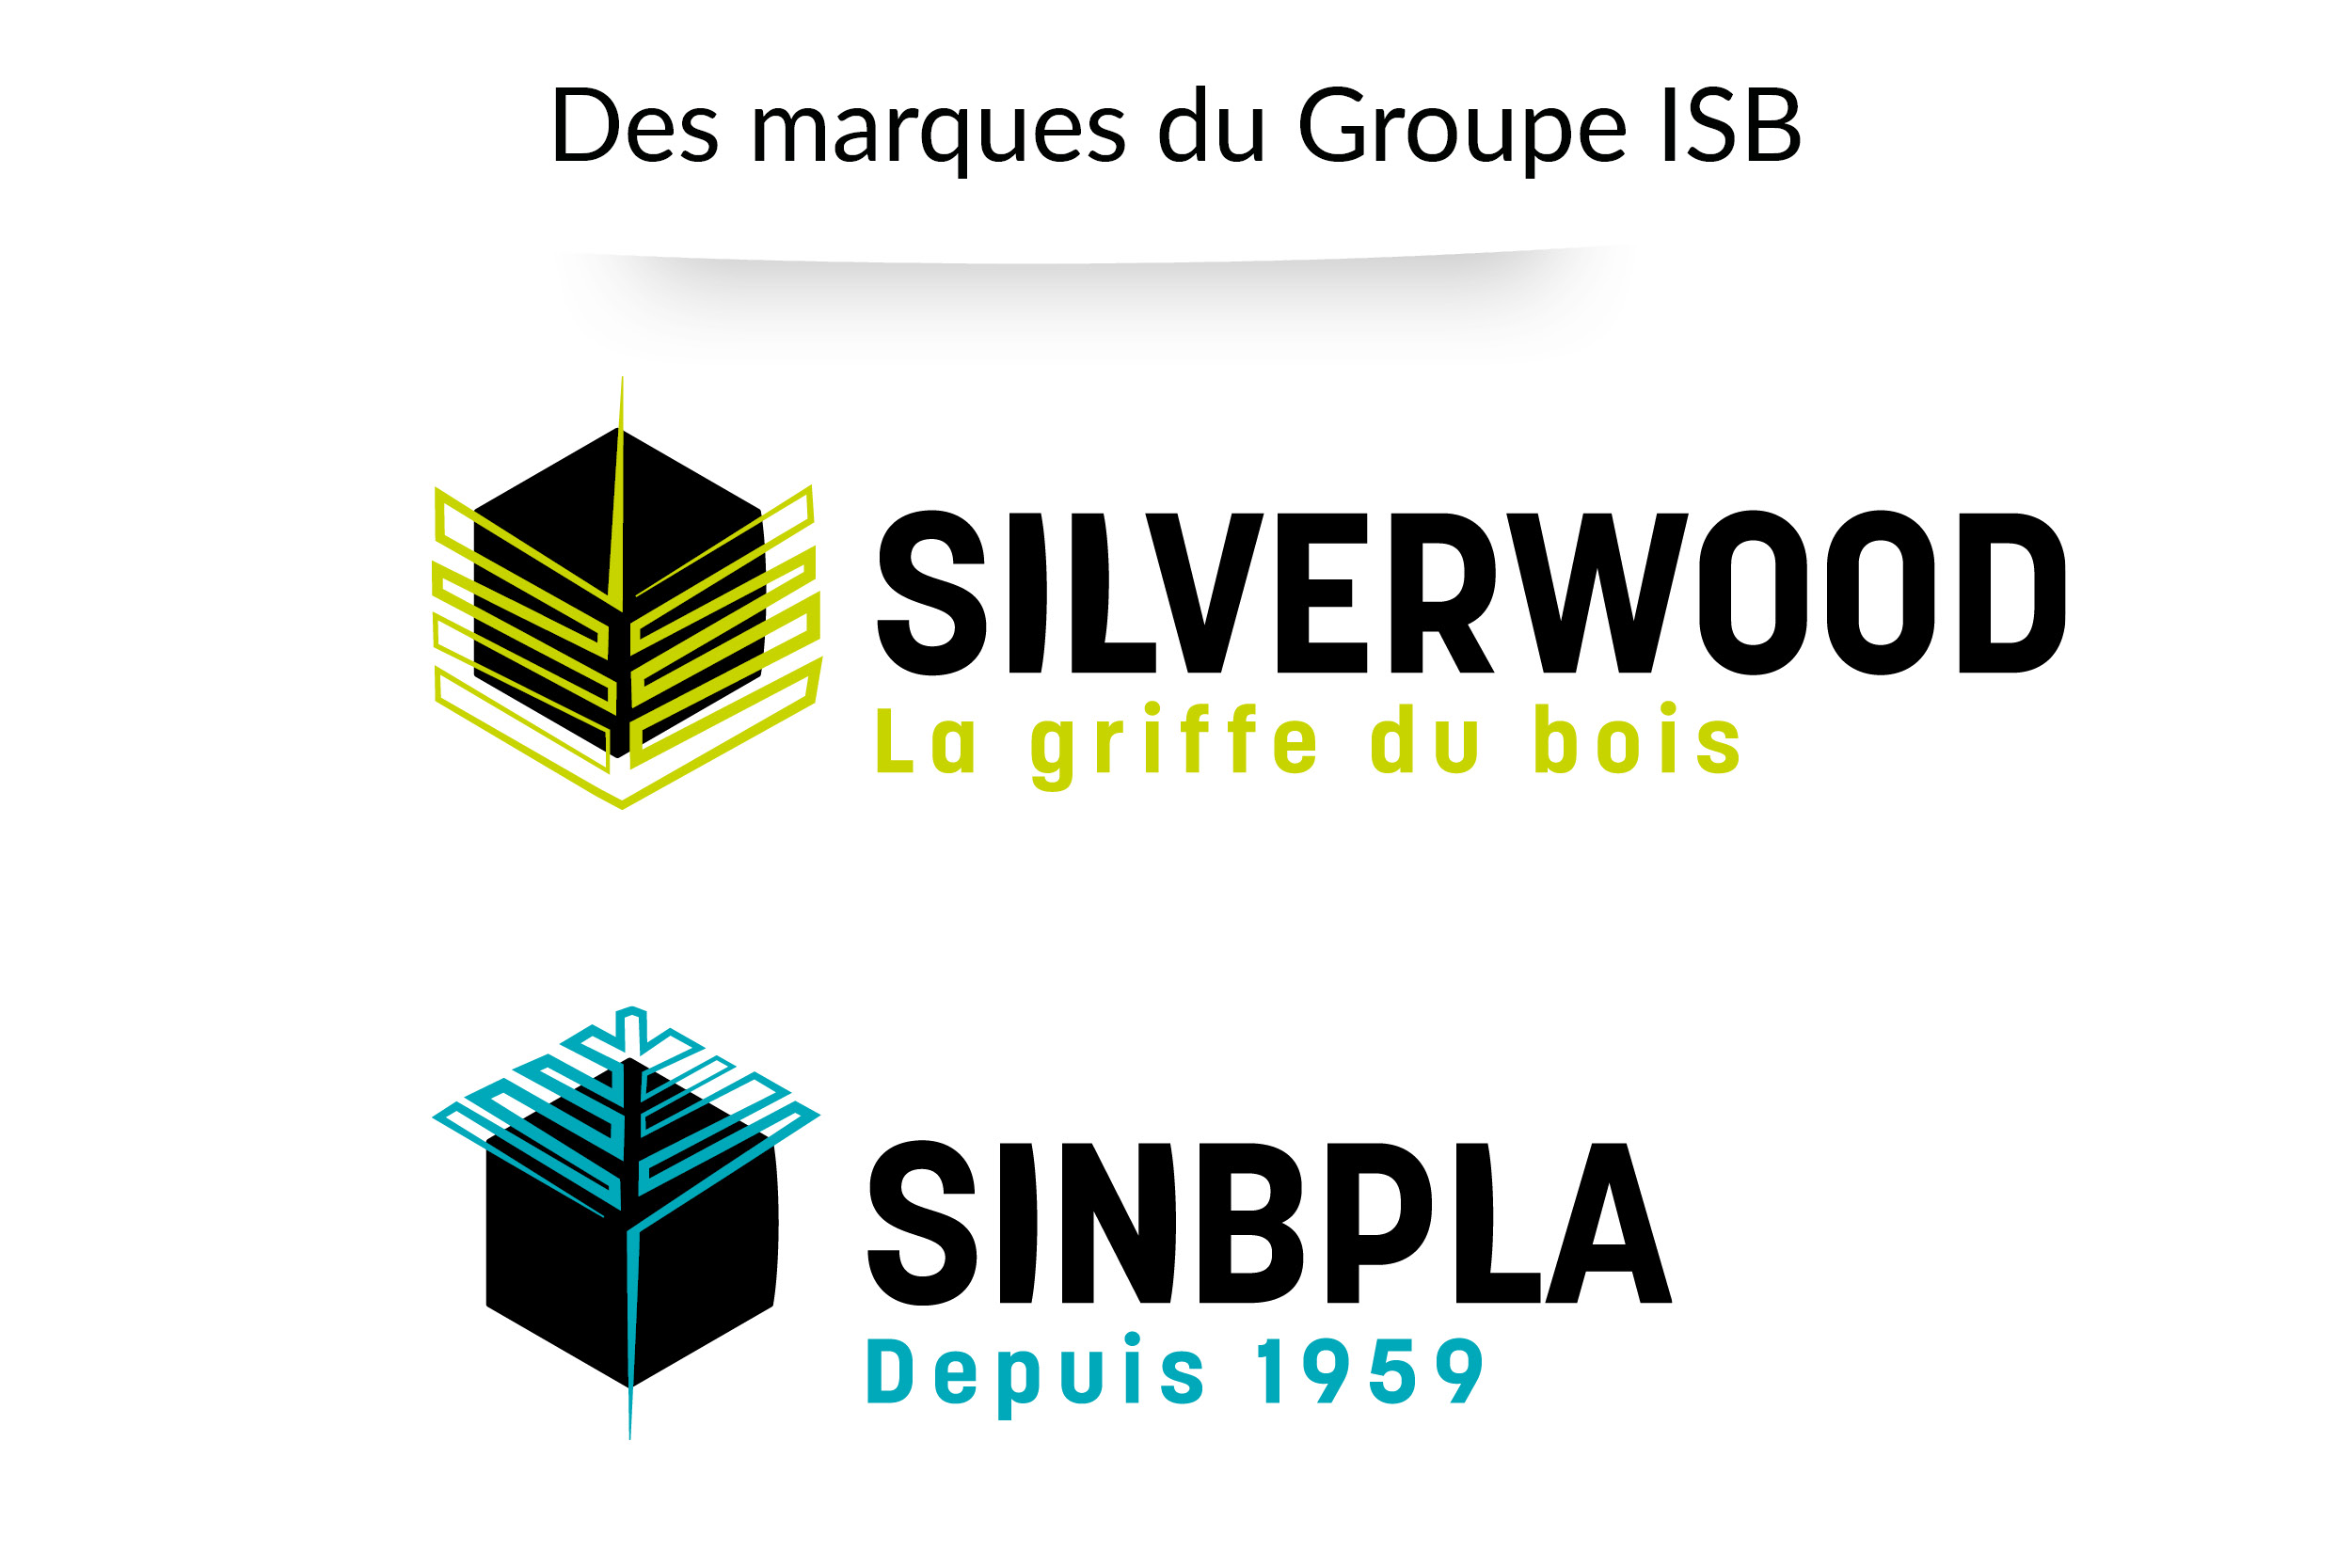 ISB France (SILVERWOOD-SINBPLA)